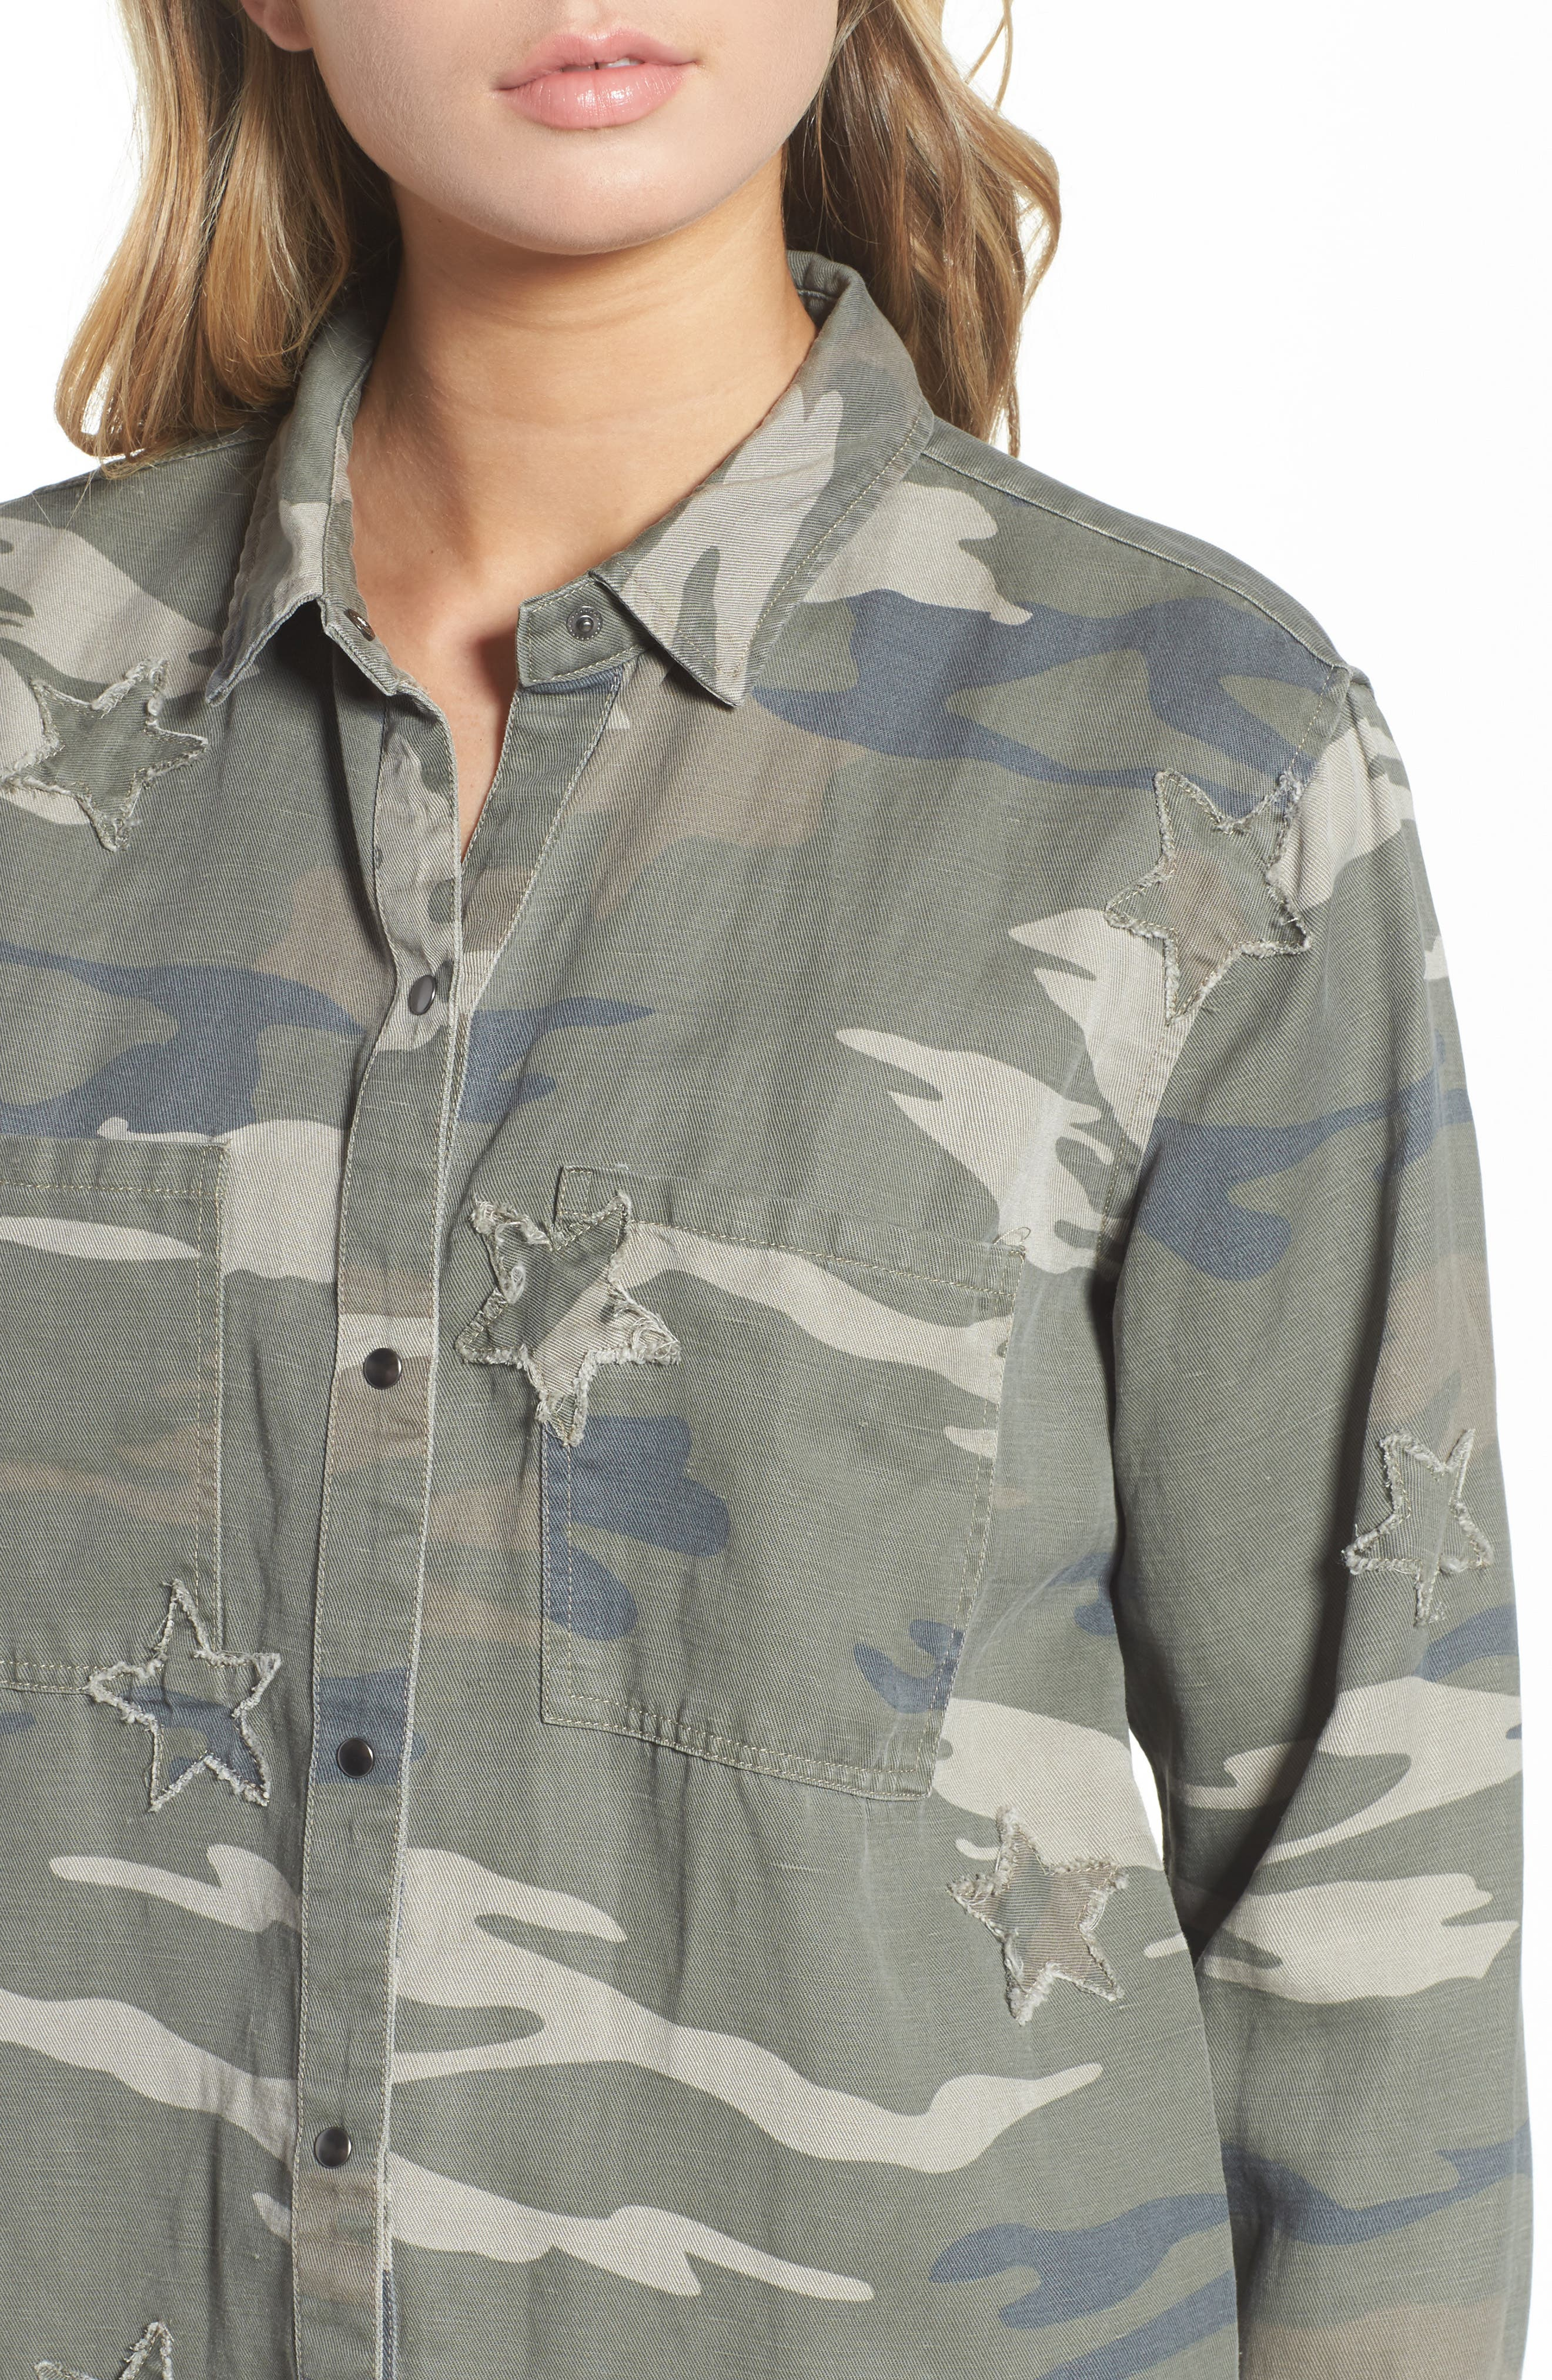 Marcel Shirt,                             Alternate thumbnail 4, color,                             Sage Camo With Stars